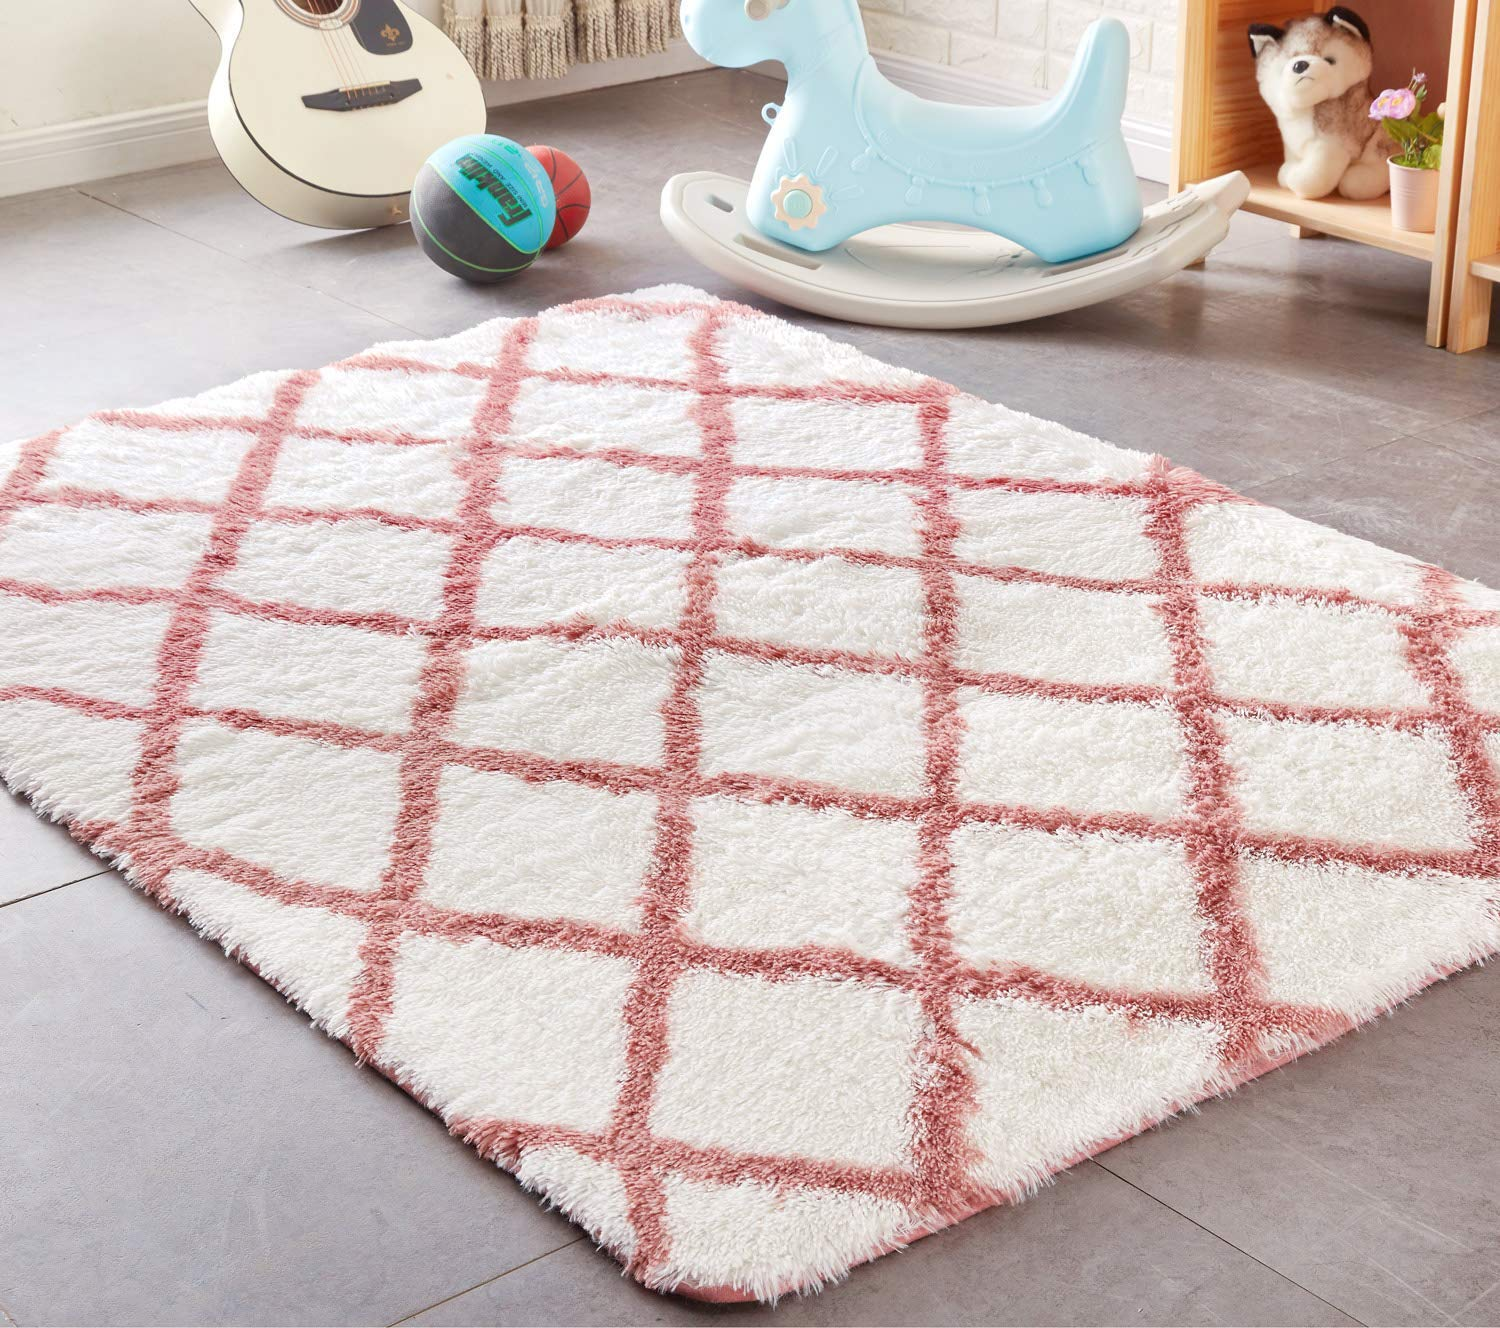 PAGISOFE Shaggy Fluffy Area Rugs Carpets for Baby Nursery Teens Girls Rooms 4x5.3 Feet Plush Fuzzy Patterned Shag Rugs for Kids Bedrooms Home Room Floor Accent Decor Fur Rug (Pink Trellis)